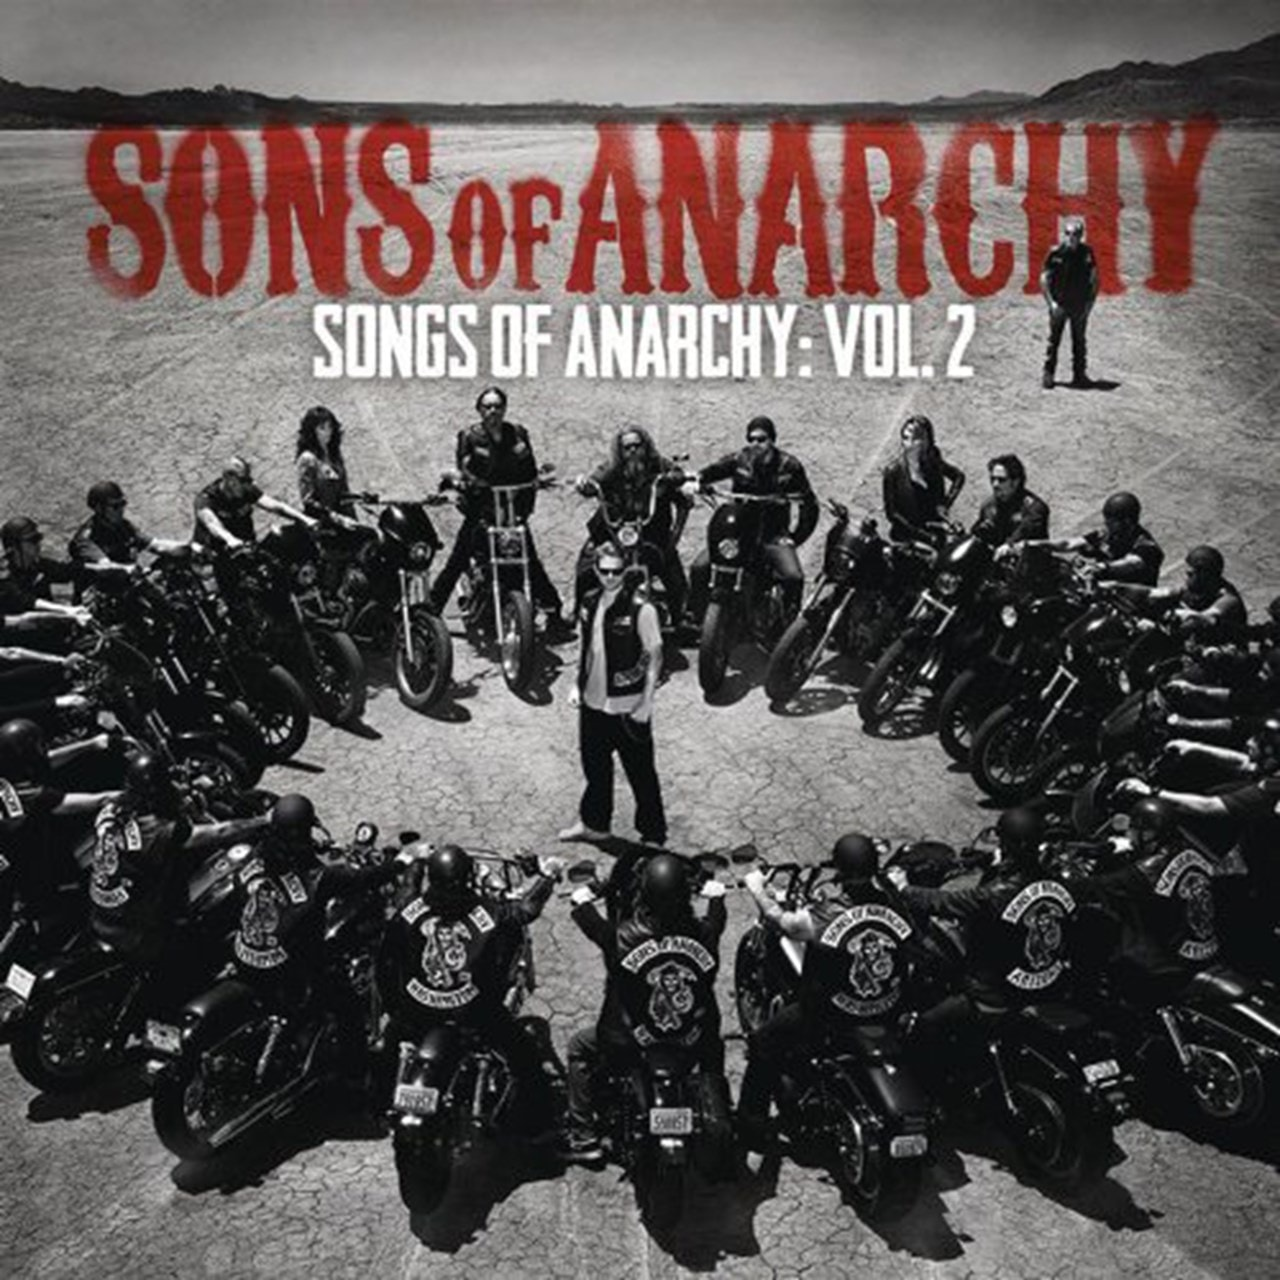 Songs of Anarchy: Music from Sons of Anarchy - Volume 2 - 1